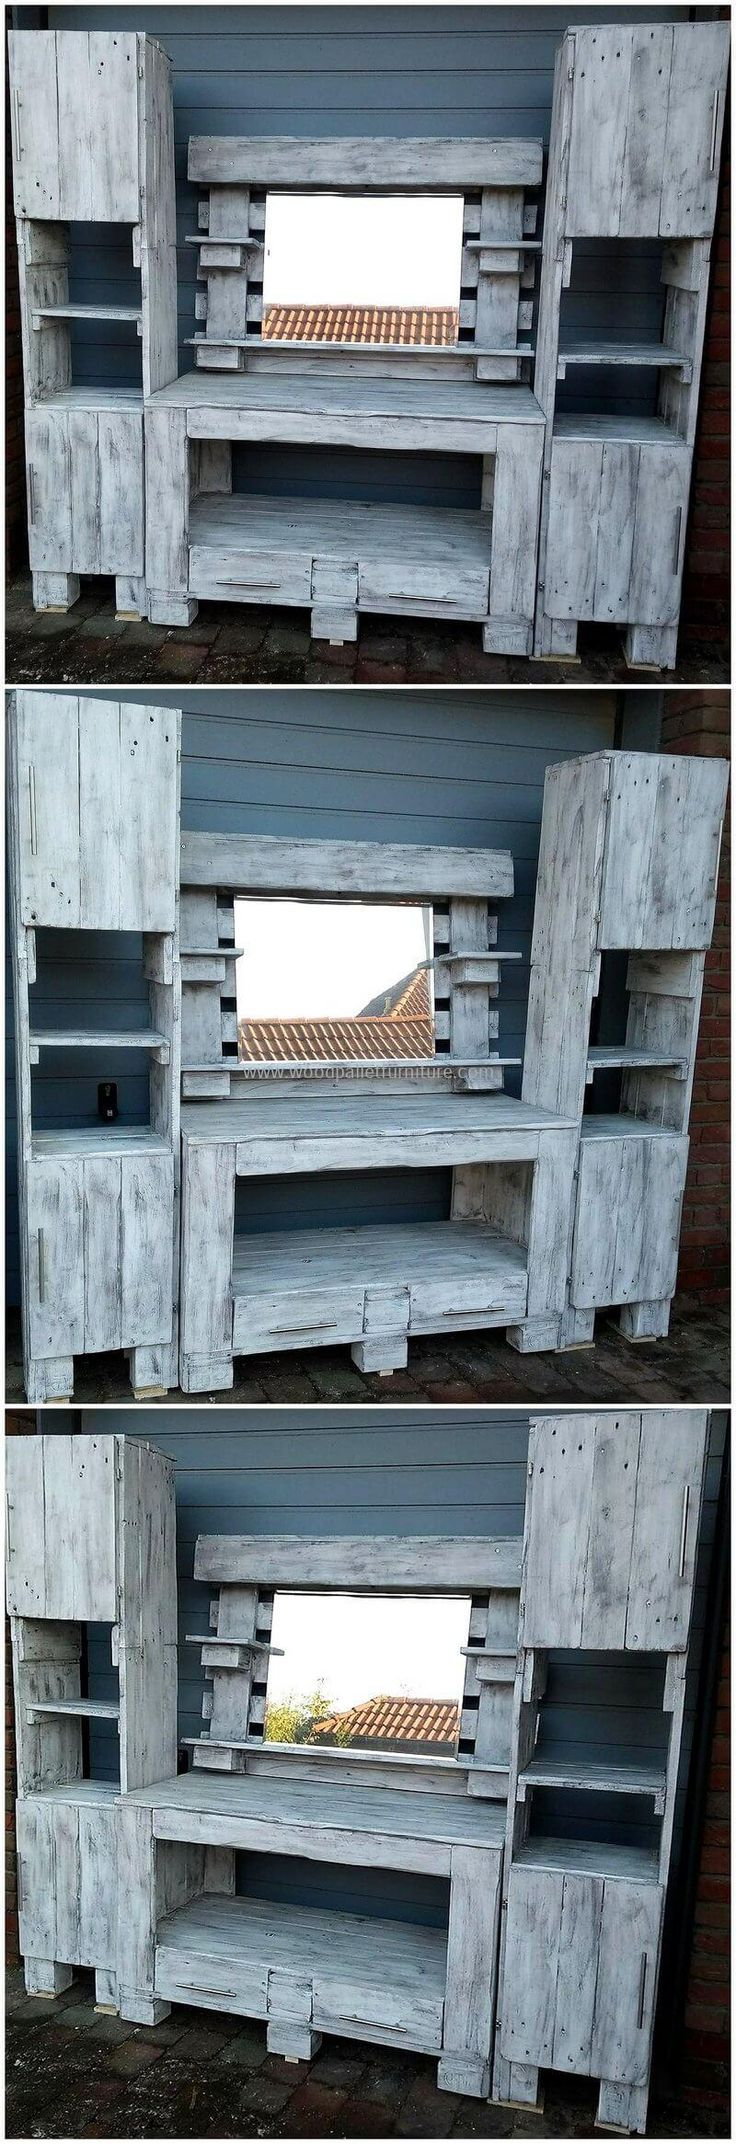 Now give you lounge or living room an amazing look with the custom designing pallet project of the rustic pallet Wash Basin. This pallet plan seems much attractive looking with the fabulous woodwork and with the stylish construction of pallet cabinets, shelves, and drawers in it.